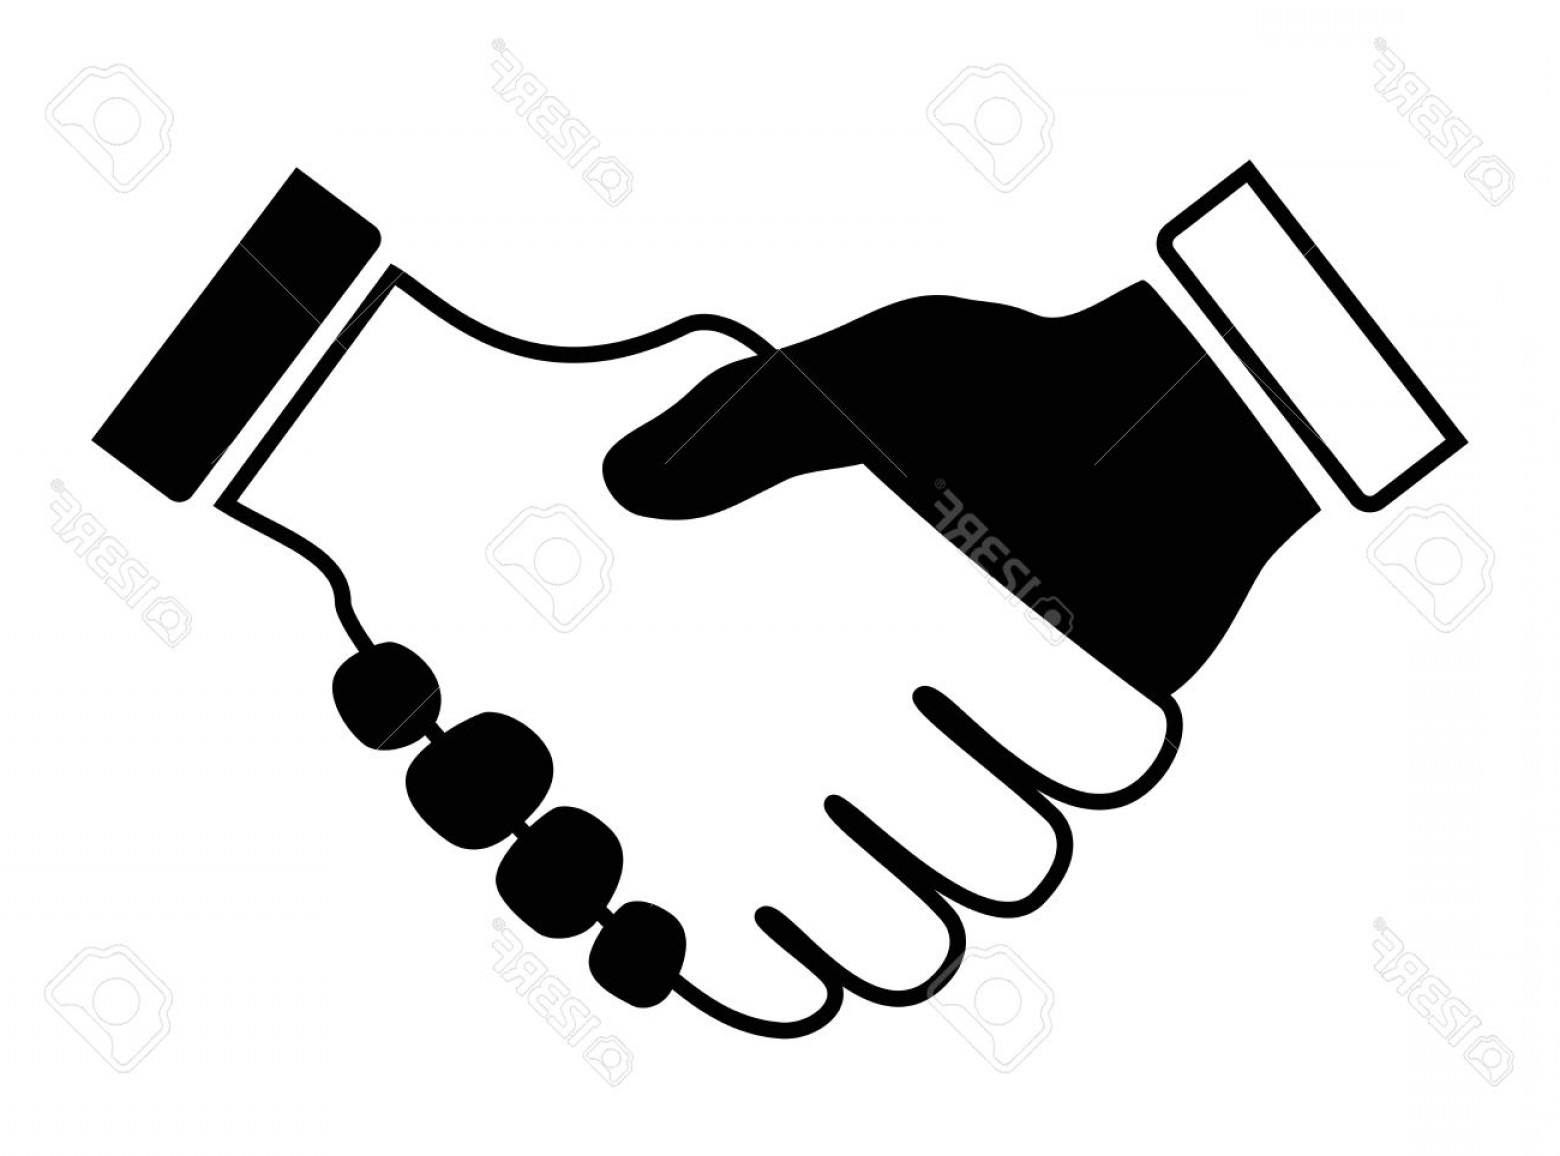 Handshake Vector Art: Photostock Vector Hand Shake Icon Black And White